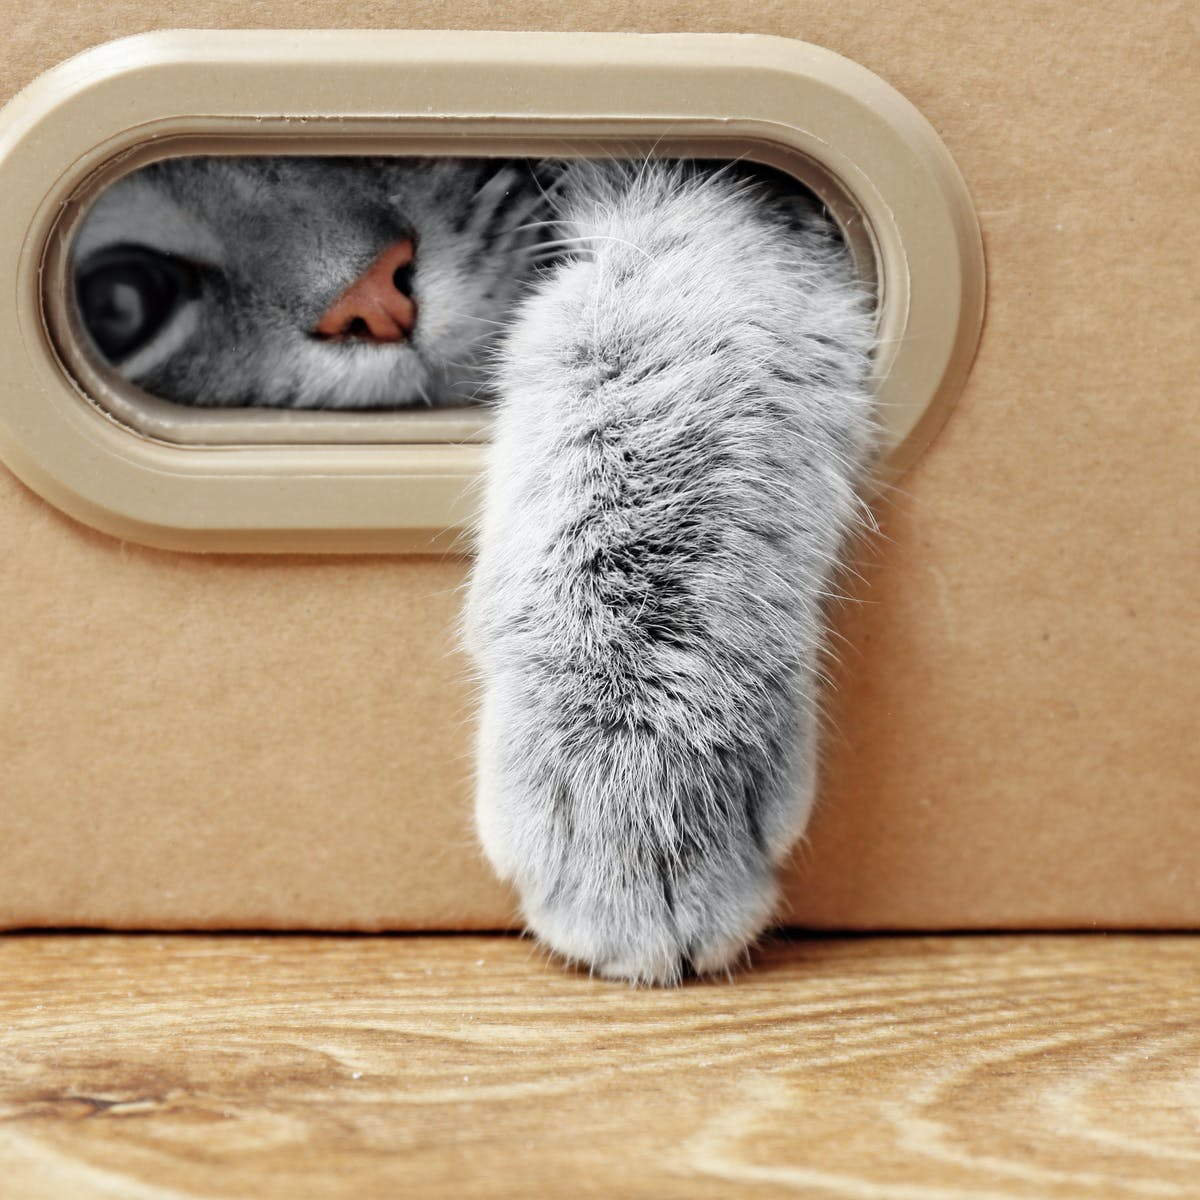 Can Cats Really Get Or Pass On Covid 19 As A Report From Belgium Suggests